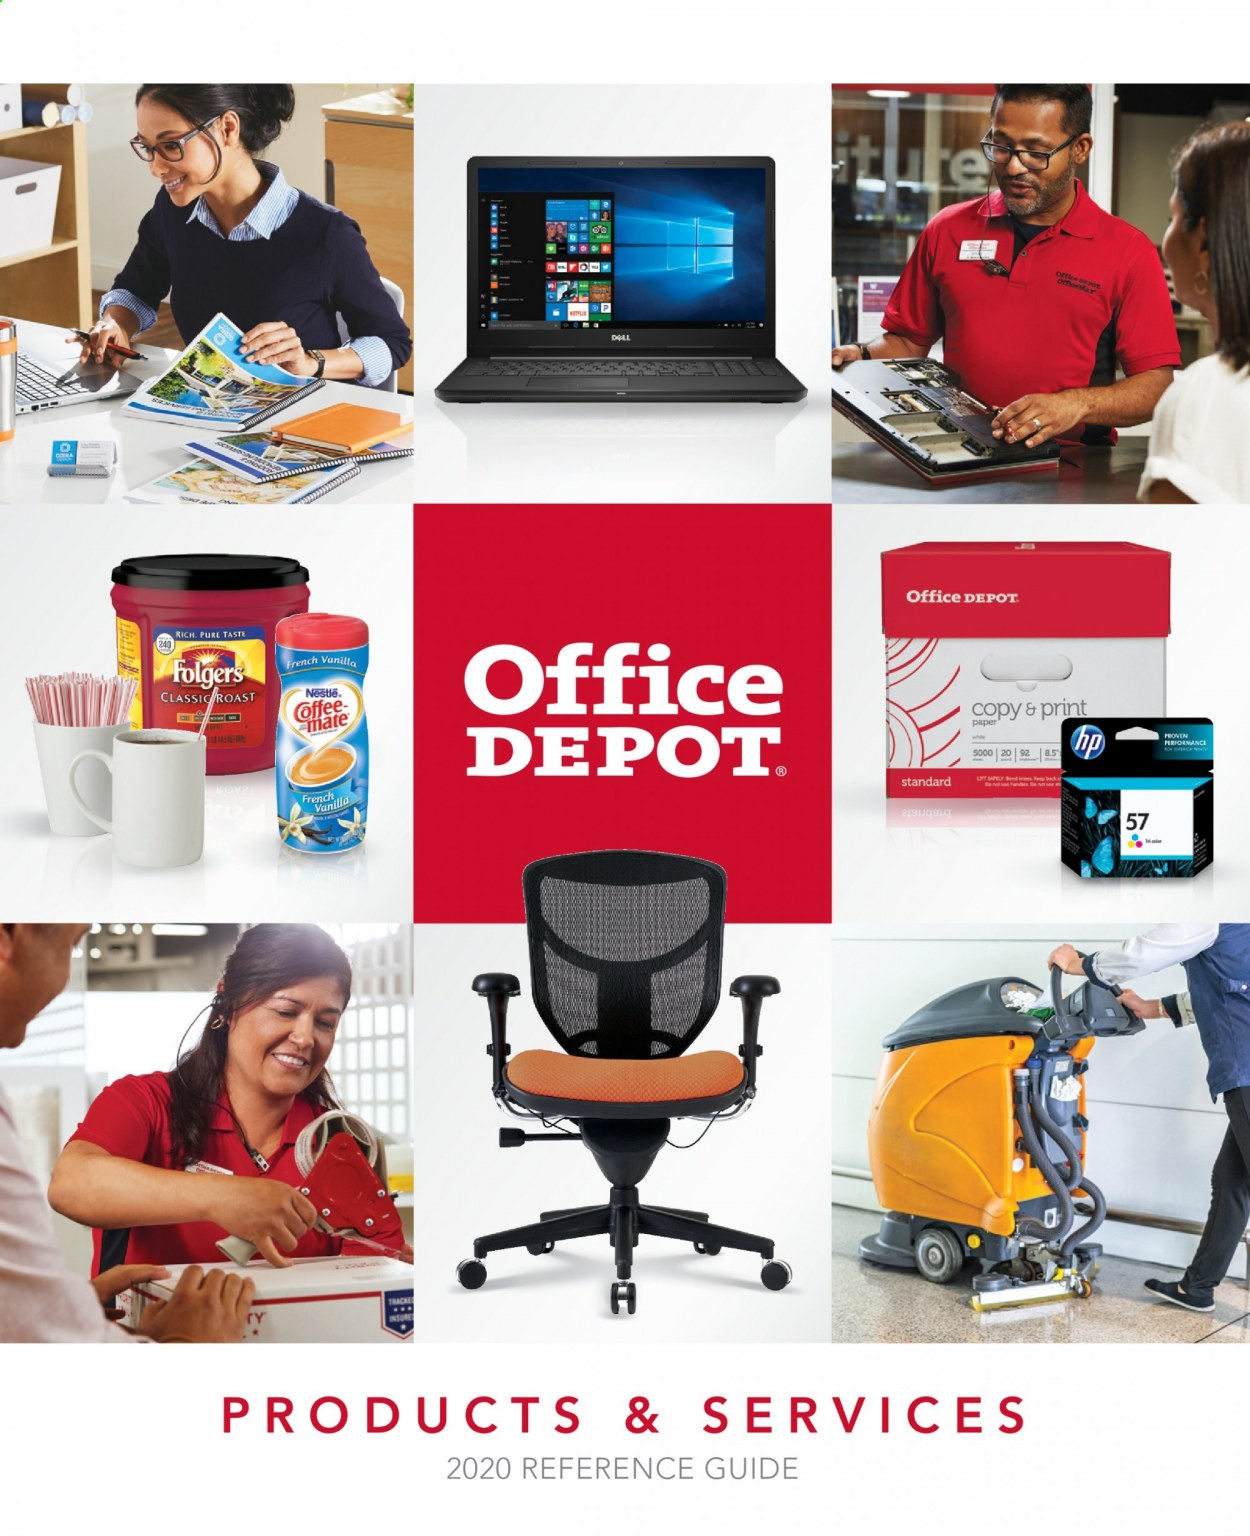 Office DEPOT Flyer - Sales products - dell, mate, nestlé, hp, roast, folgers. Page 1.